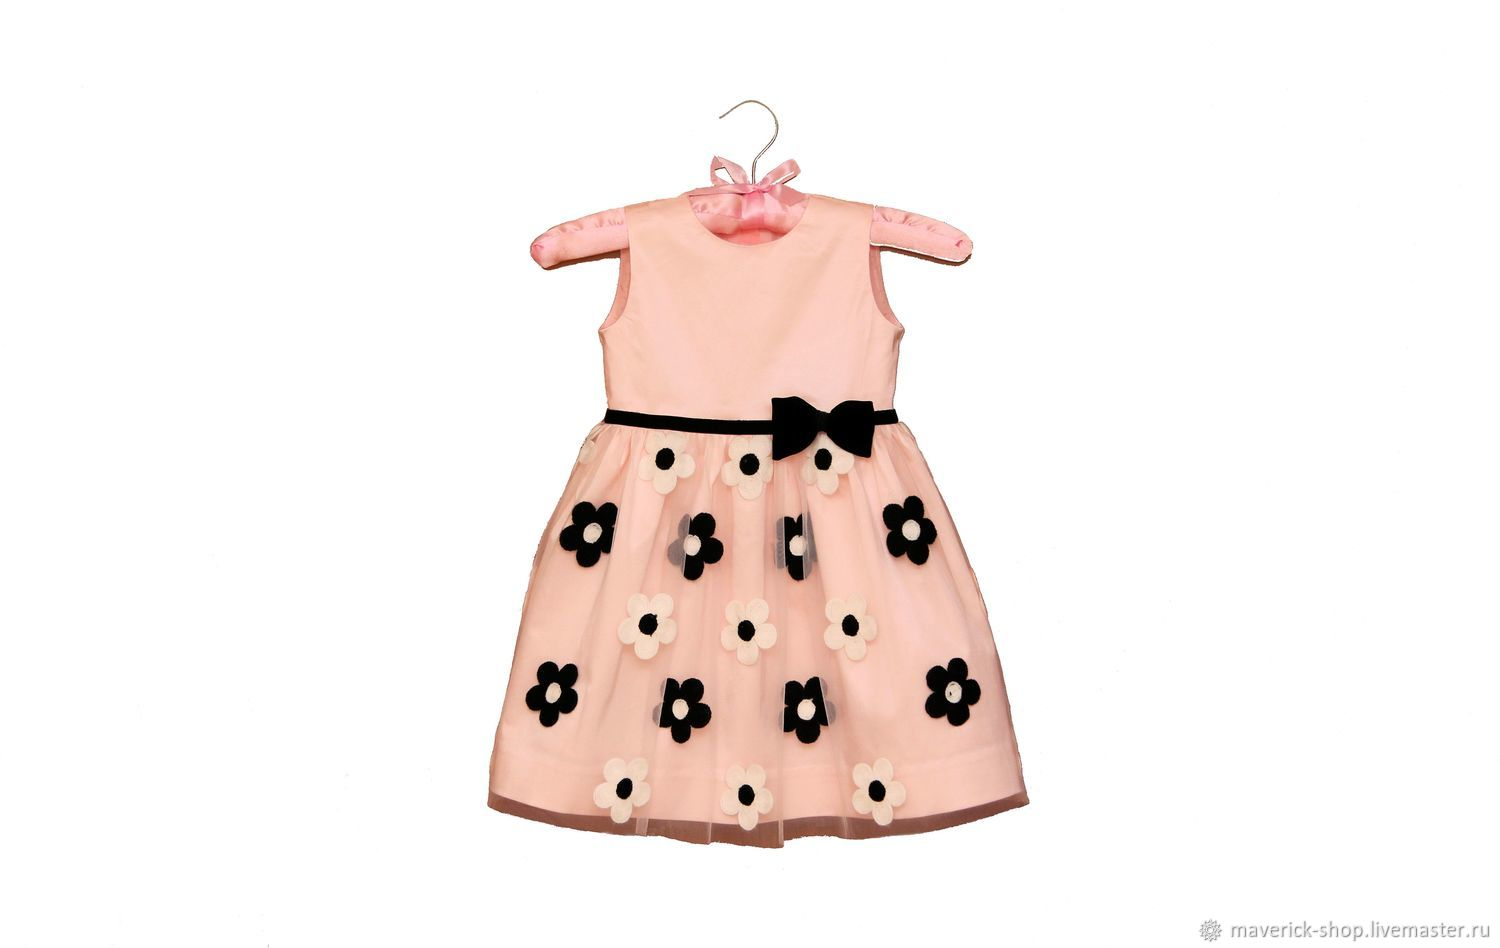 025125bf1da Black And White Flowers Clothes For S Handmade Livemaster Handmade Pink  Dressy Dress For With. Pink Dressy Dress For With Black And White Flowers